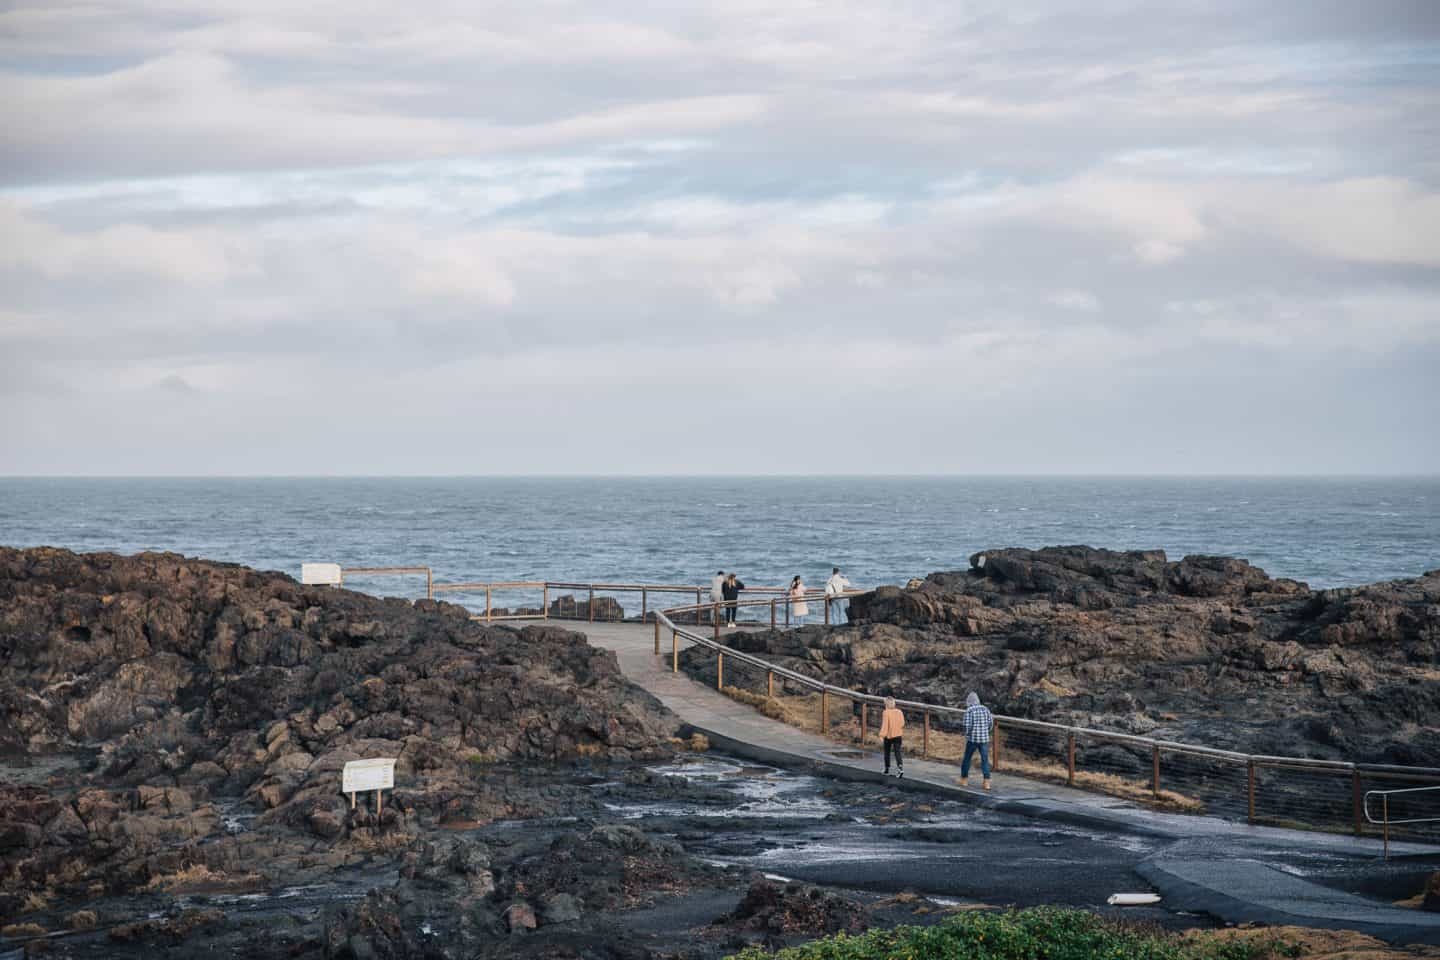 things to do in kiama, kiama things to do, kiama attractions, kiama coastal walk, things to do kiama, what to do in kiama, blow hole kiama, Kiama, Kiama Australia, Kiama blowhole, Kiama little blow hole